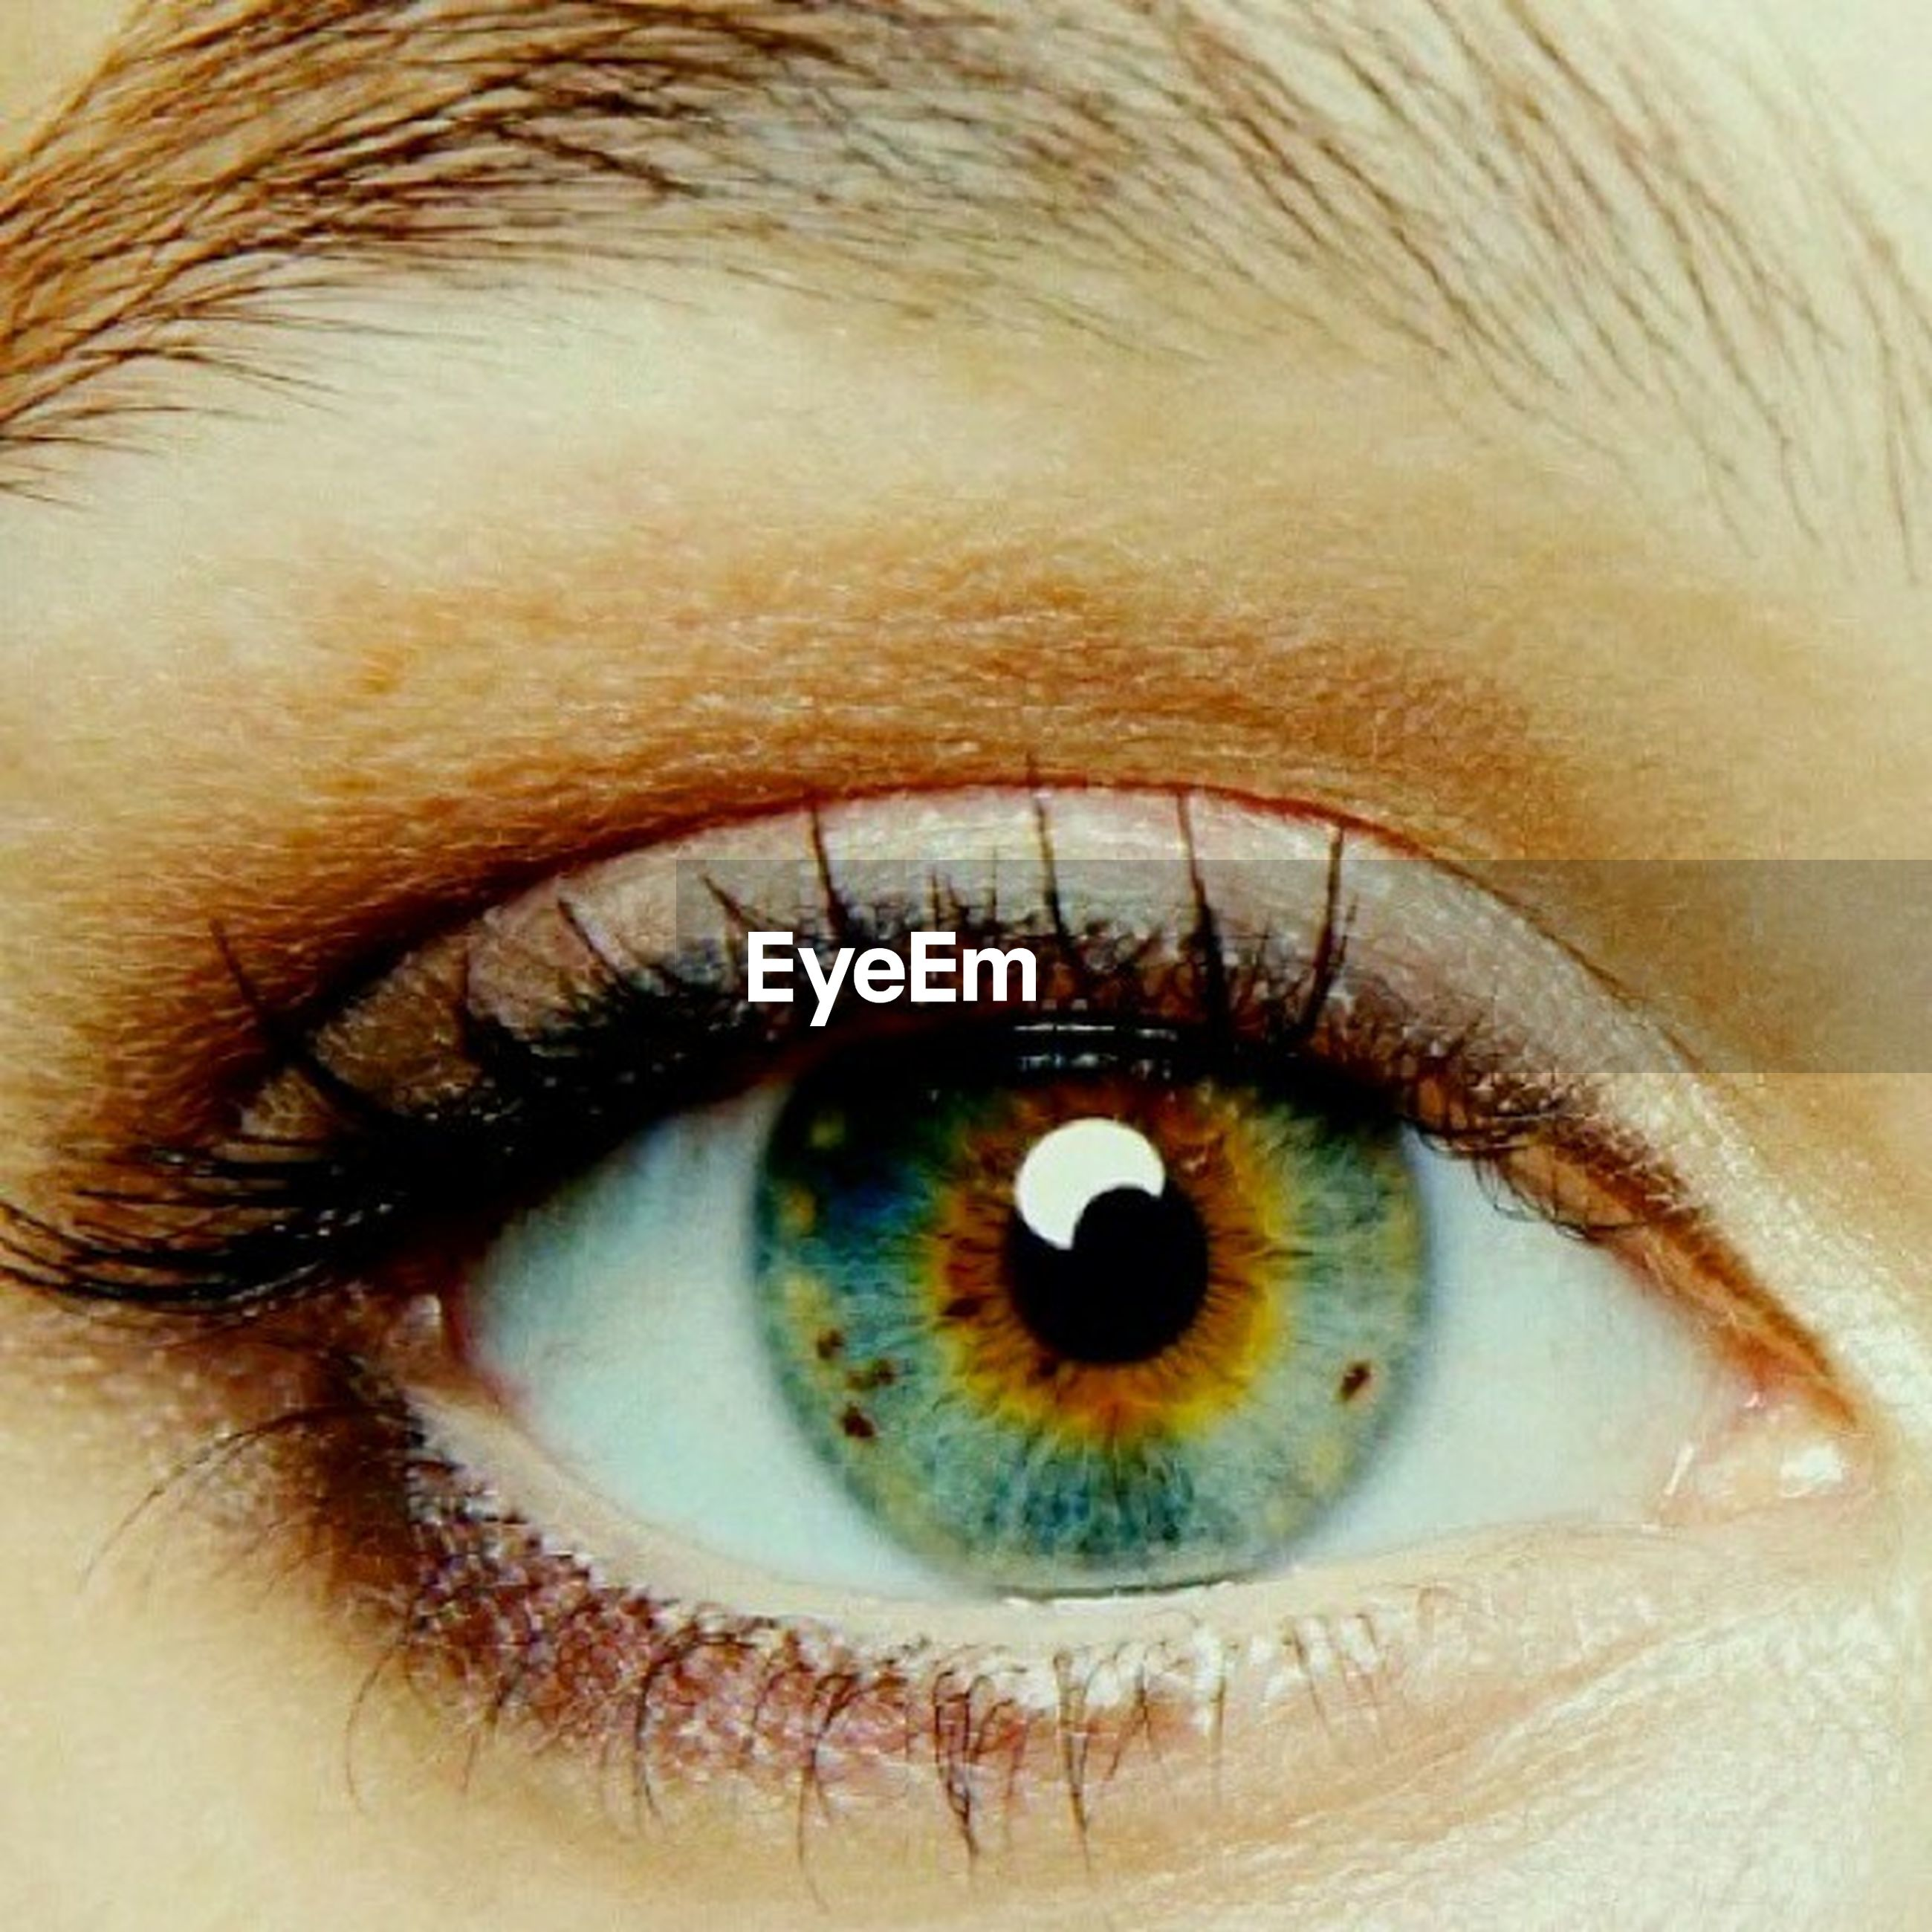 human eye, eyelash, eyesight, sensory perception, close-up, extreme close-up, iris - eye, full frame, portrait, looking at camera, eyeball, extreme close up, part of, vision, backgrounds, eyebrow, human skin